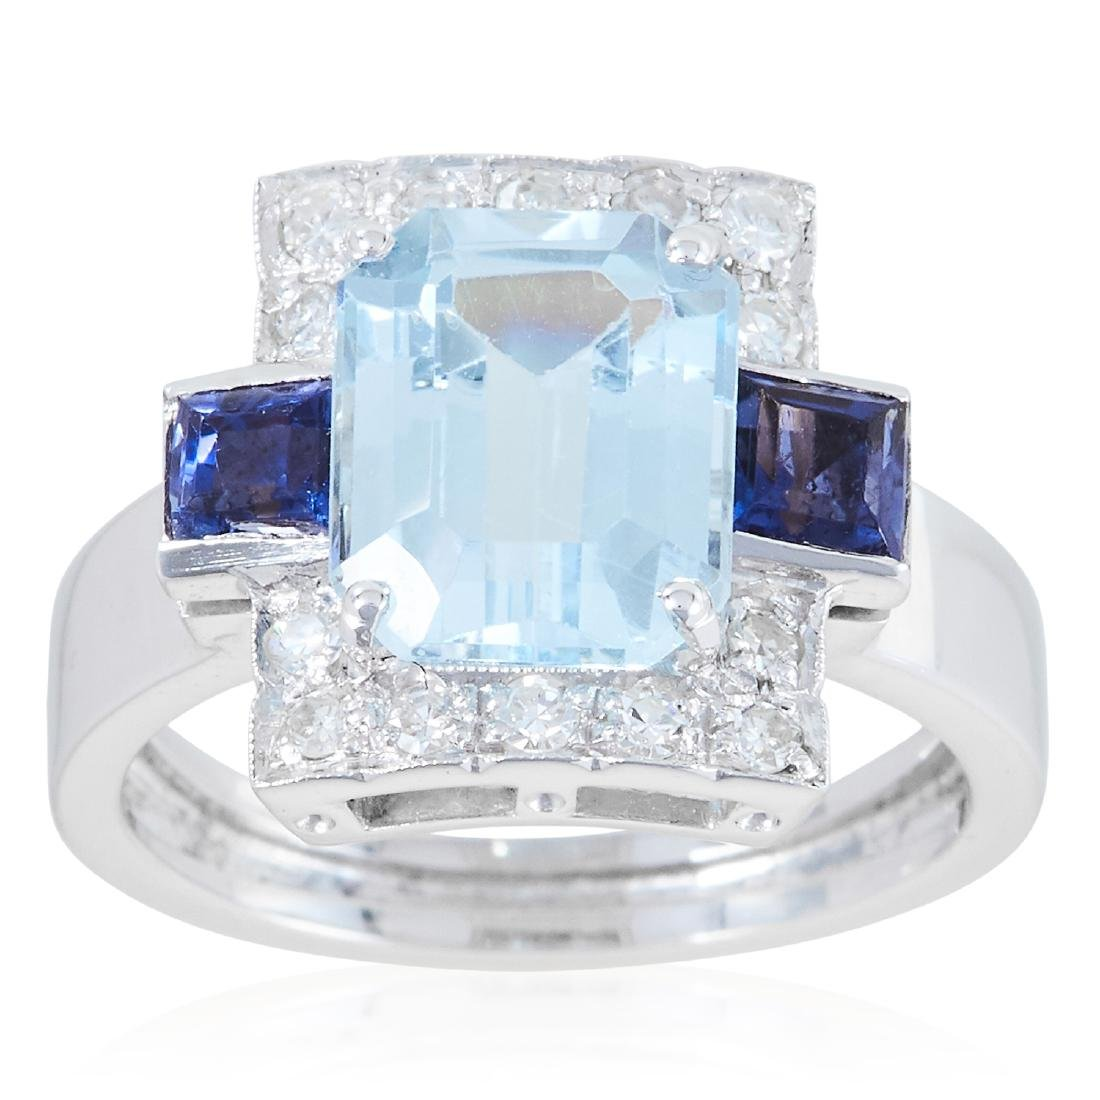 AN AQUAMARINE, SAPPHIRE AND DIAMOND RING in platinum or